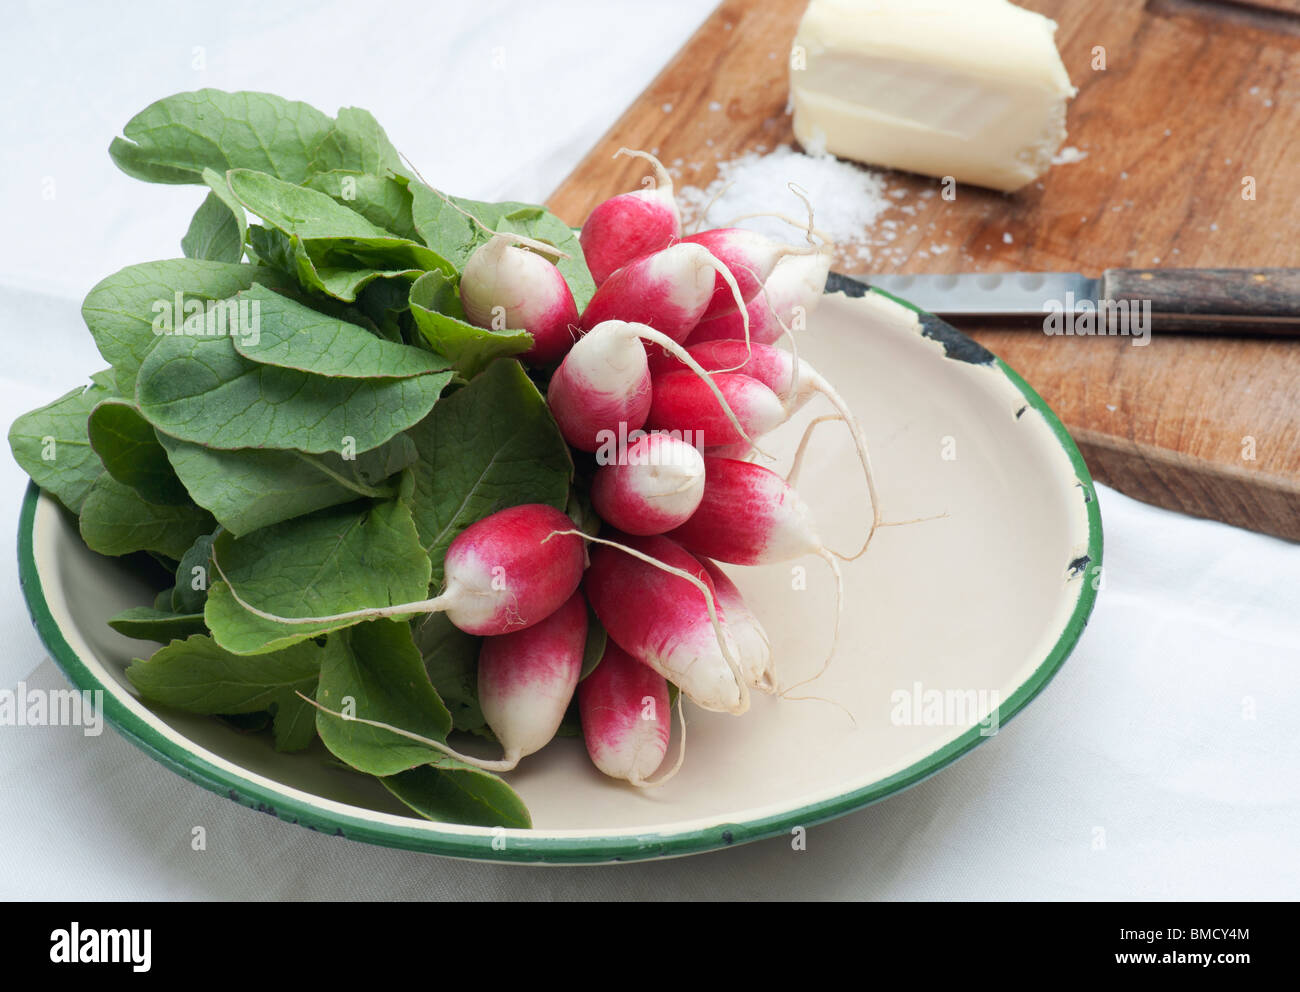 Fresh Radishes In An Enamel Dish, With Butter, Salt and A Knife In The Background Stock Photo